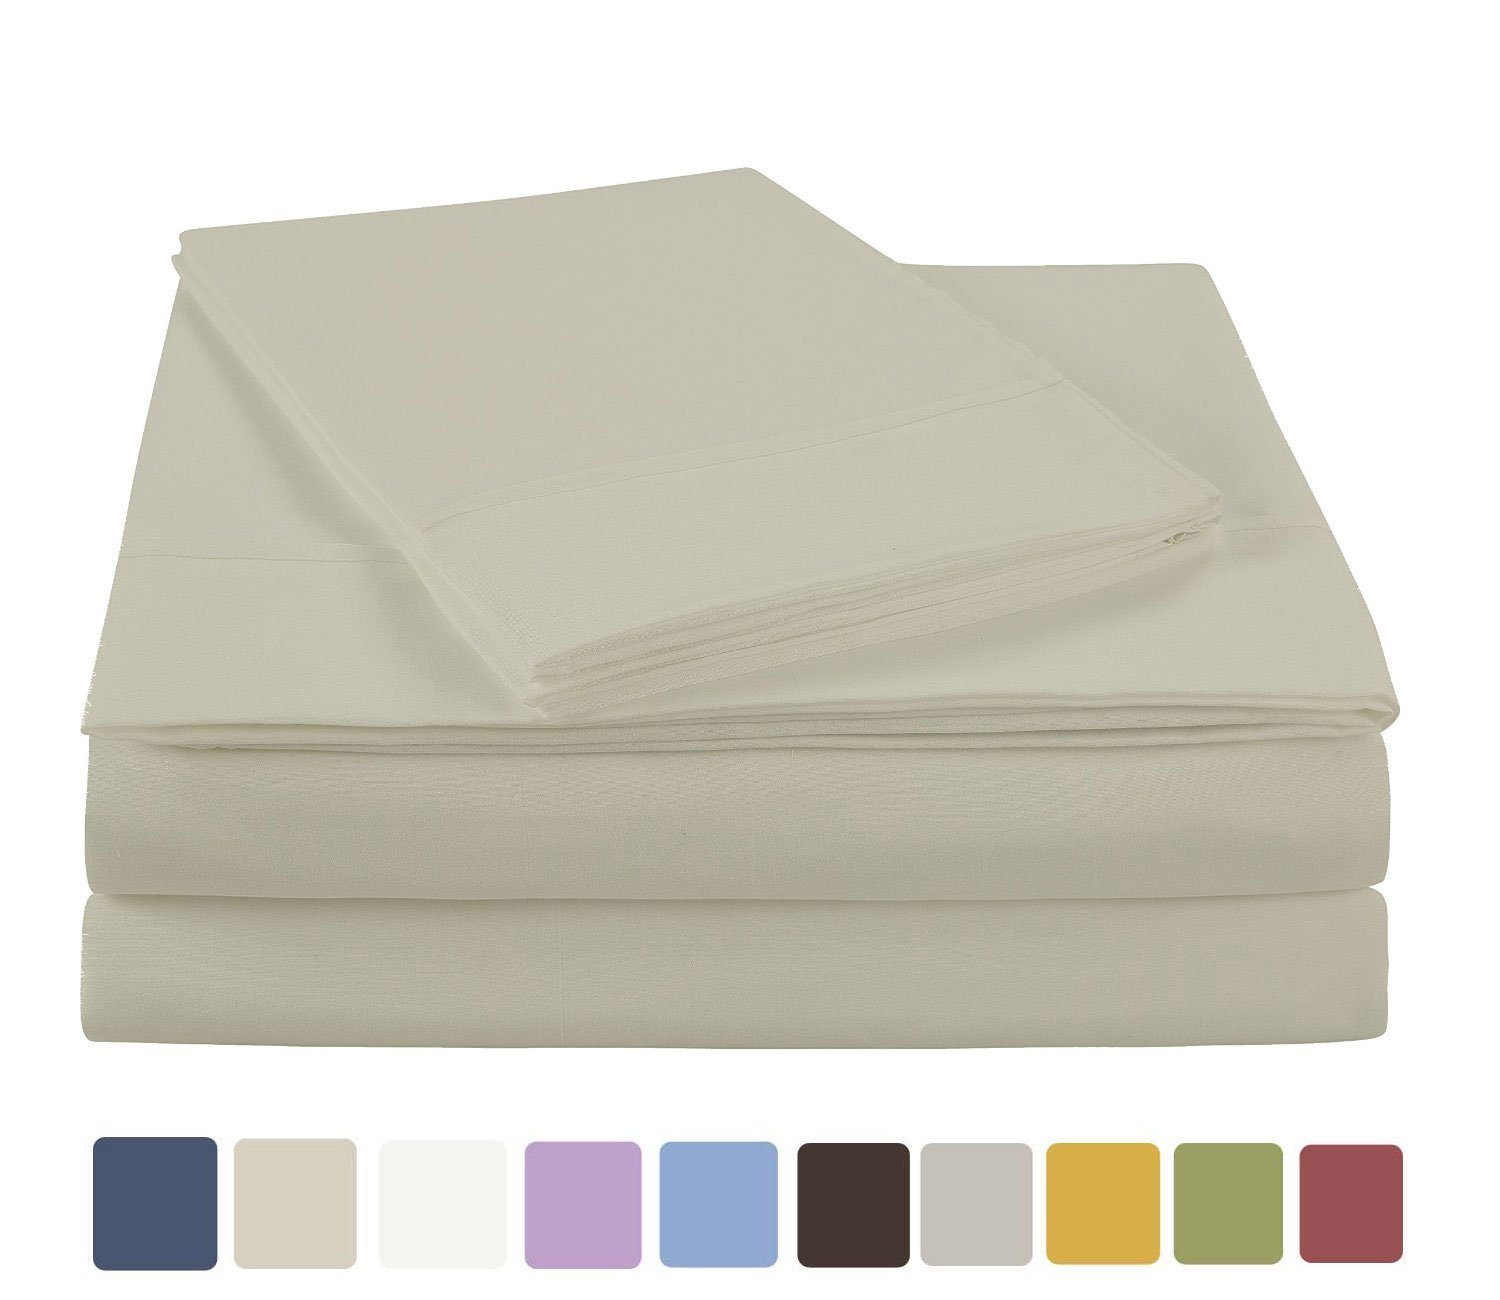 NC Home Fashions EHF ultra soft microfiber solid sheet set, Twin XL, Bone White